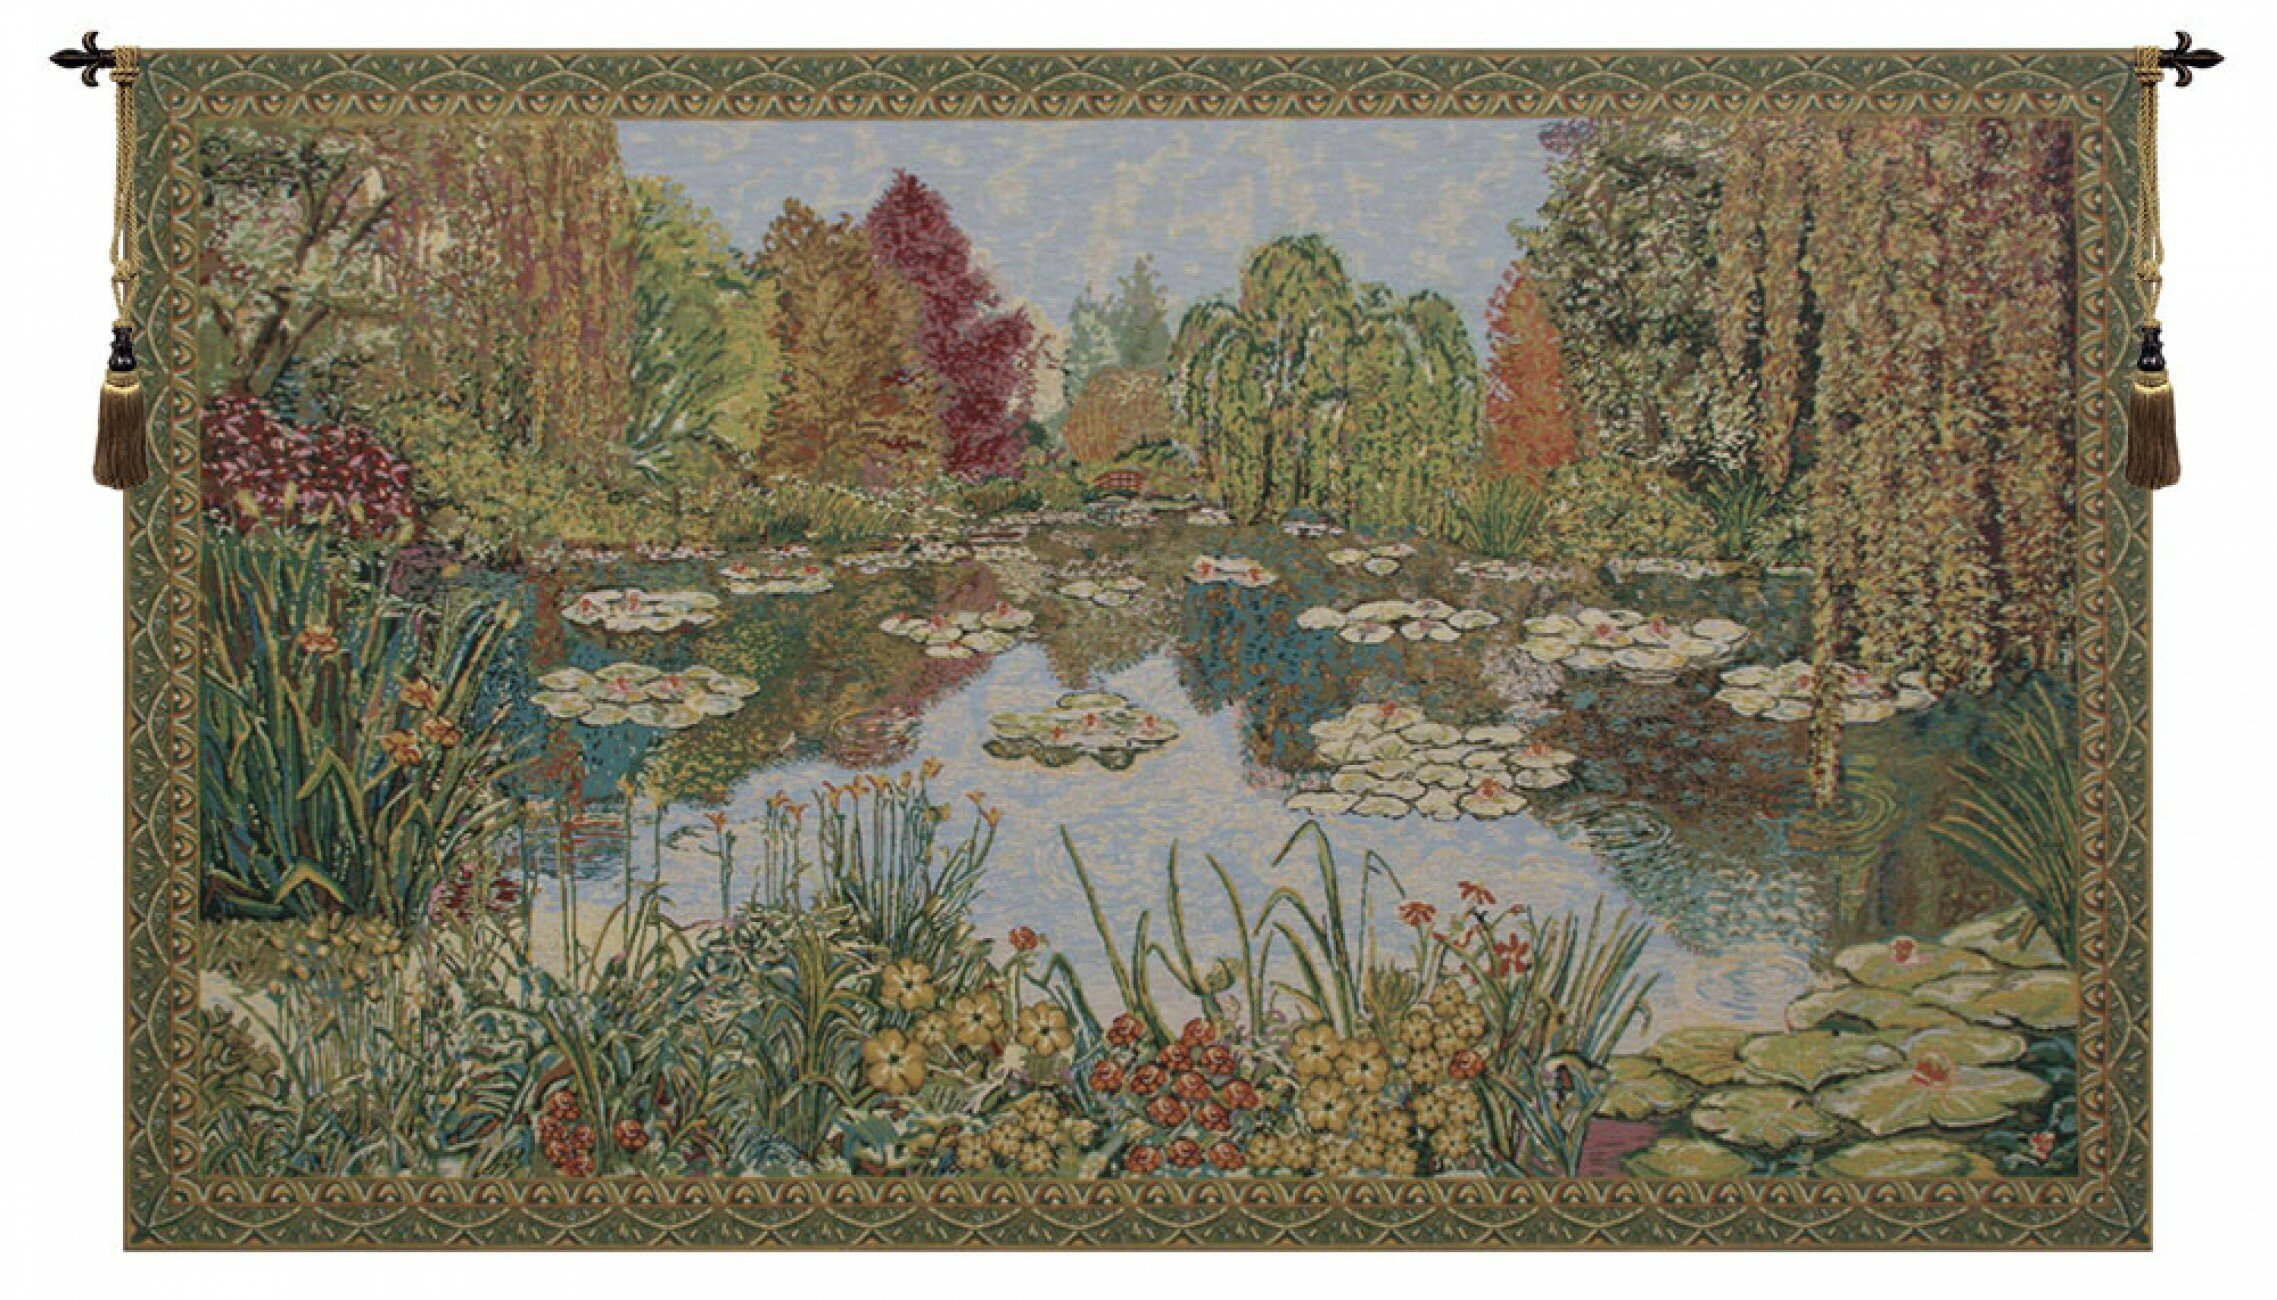 Parc De Monet Wall Hanging In 2018 Blended Fabric The Mulberry Tree – Van Gogh Wall Hangings (View 16 of 20)